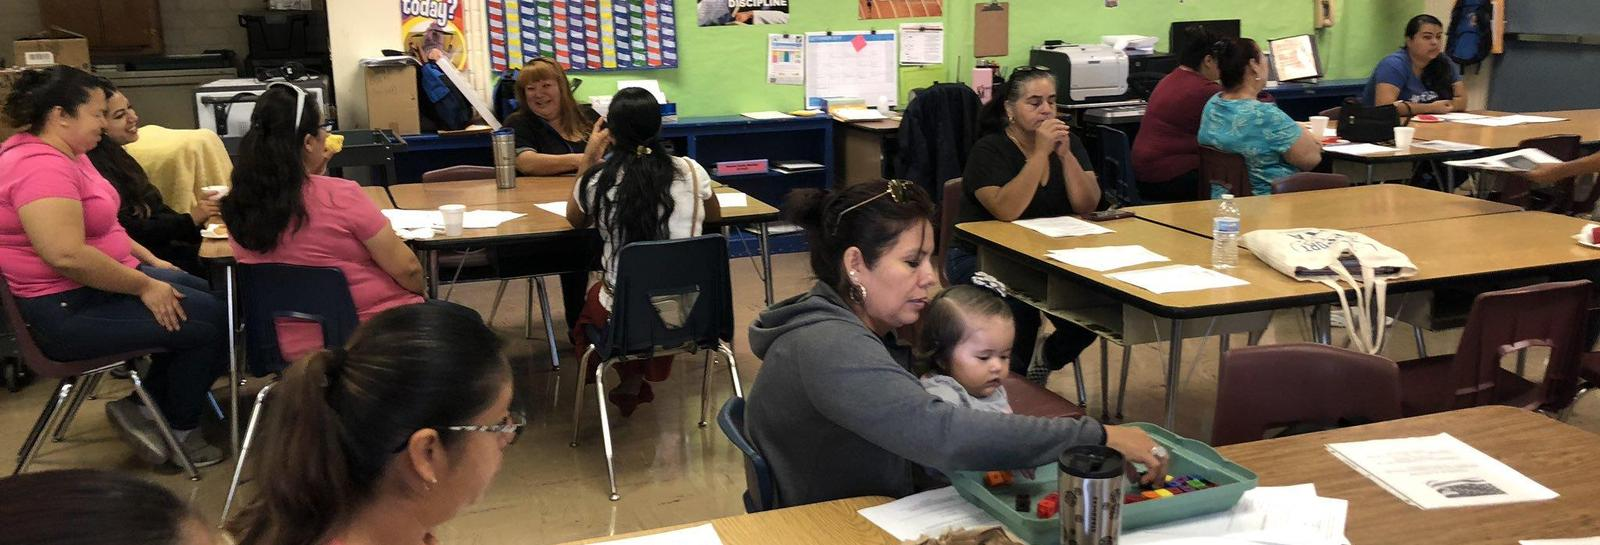 English Learner Advisory Committee - Philadelphia's ELAC meeting provides parents the support needed for reviewing reclassification criteria. #ALLmeansAll #proud2bepusd